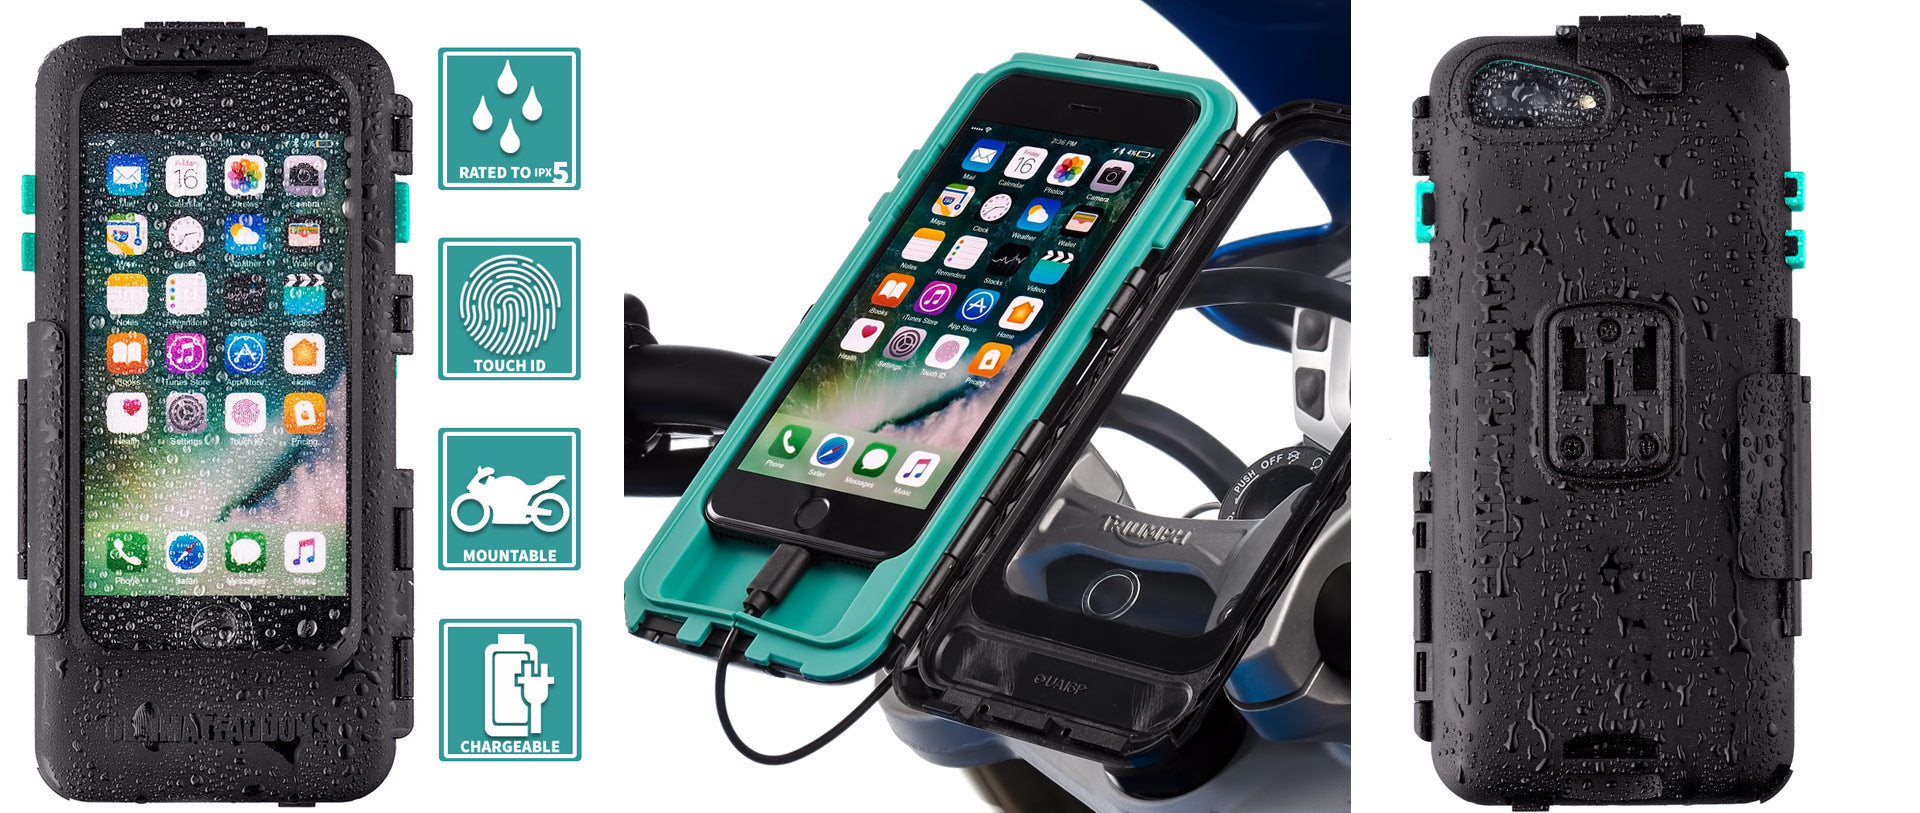 Apple iPhone 7 Plus waterproof motorcycle case